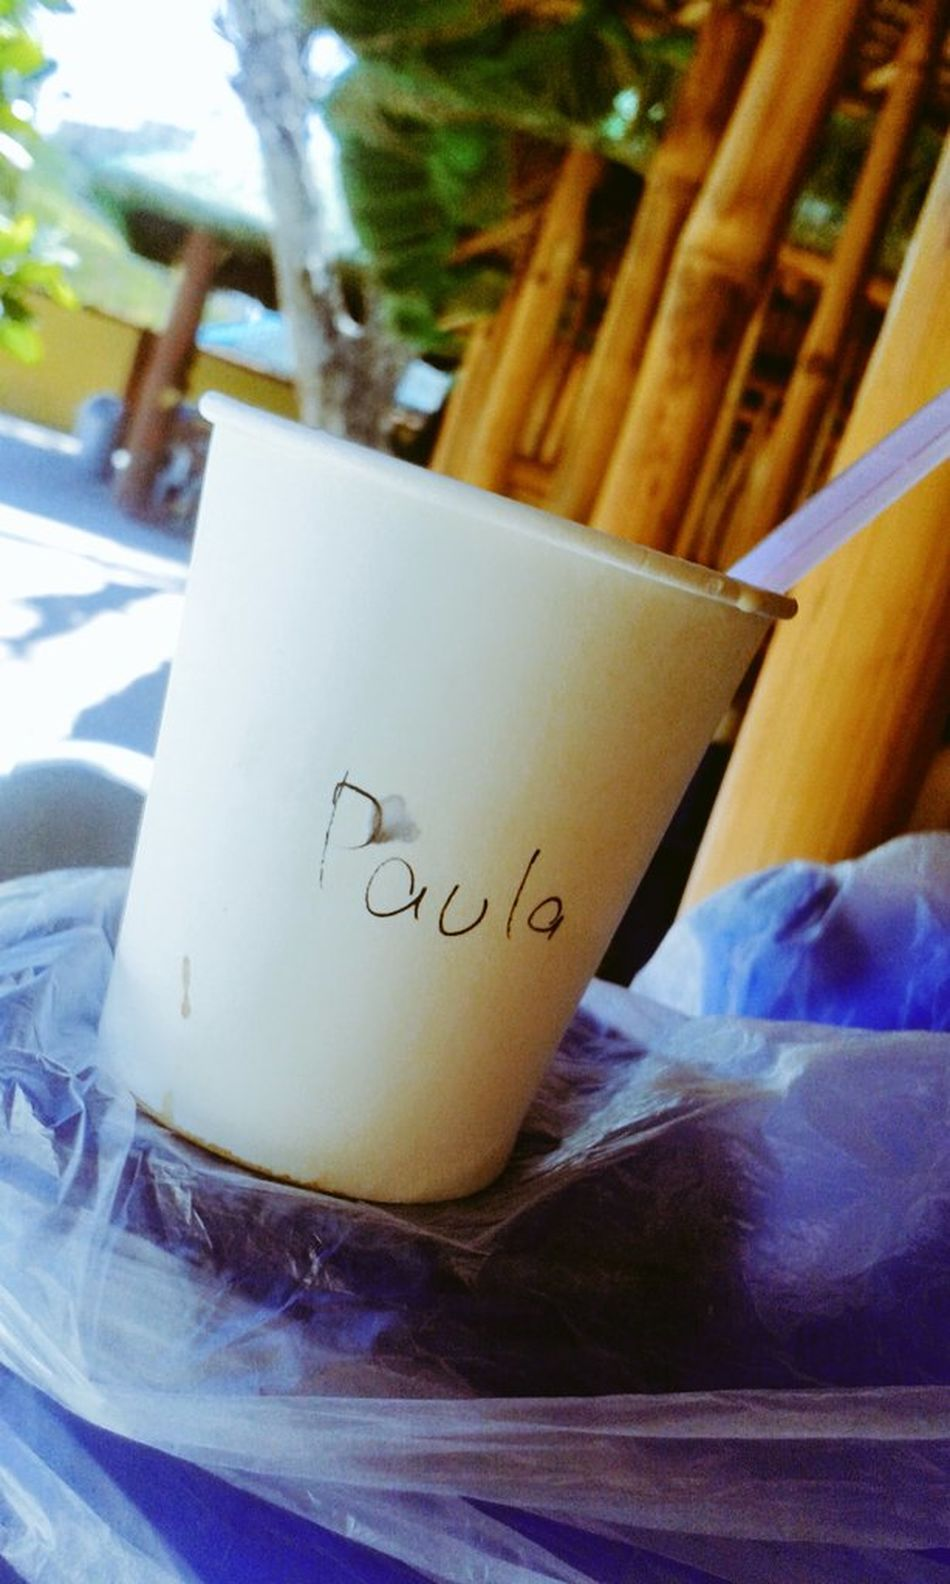 Yes it's me Nameinacup